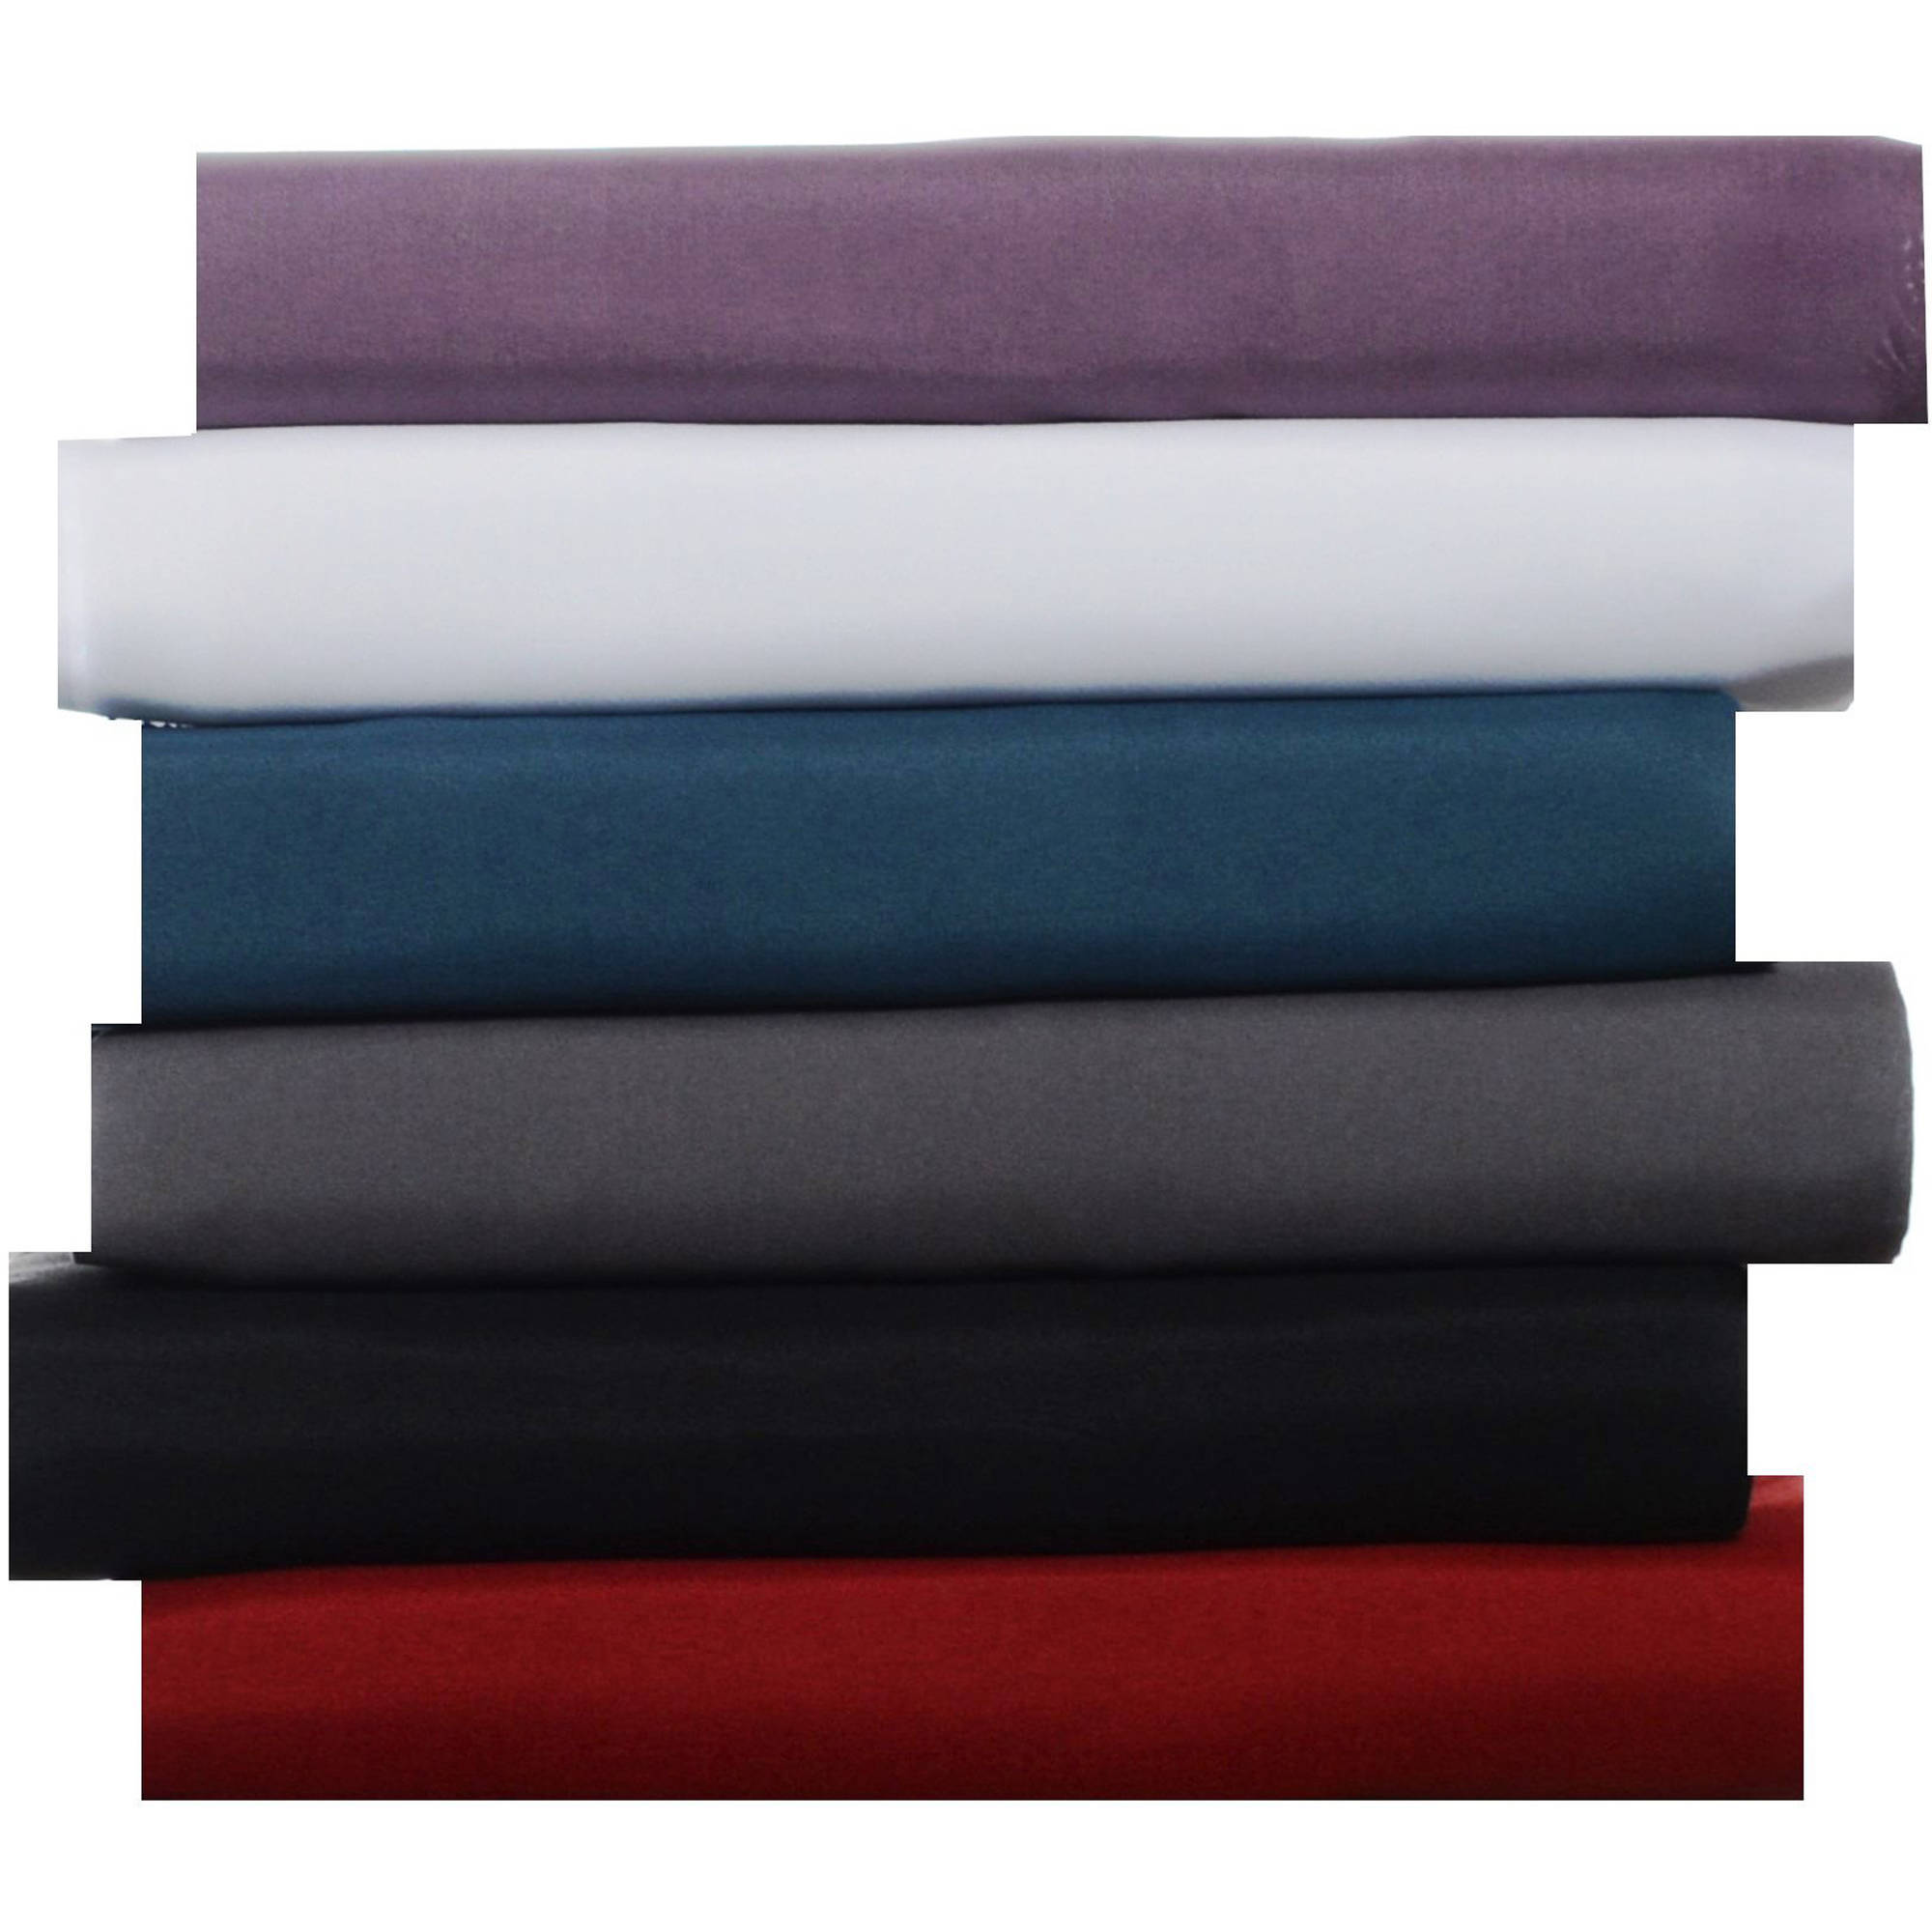 Patti Labelle Microfiber Bedding Sheet Set